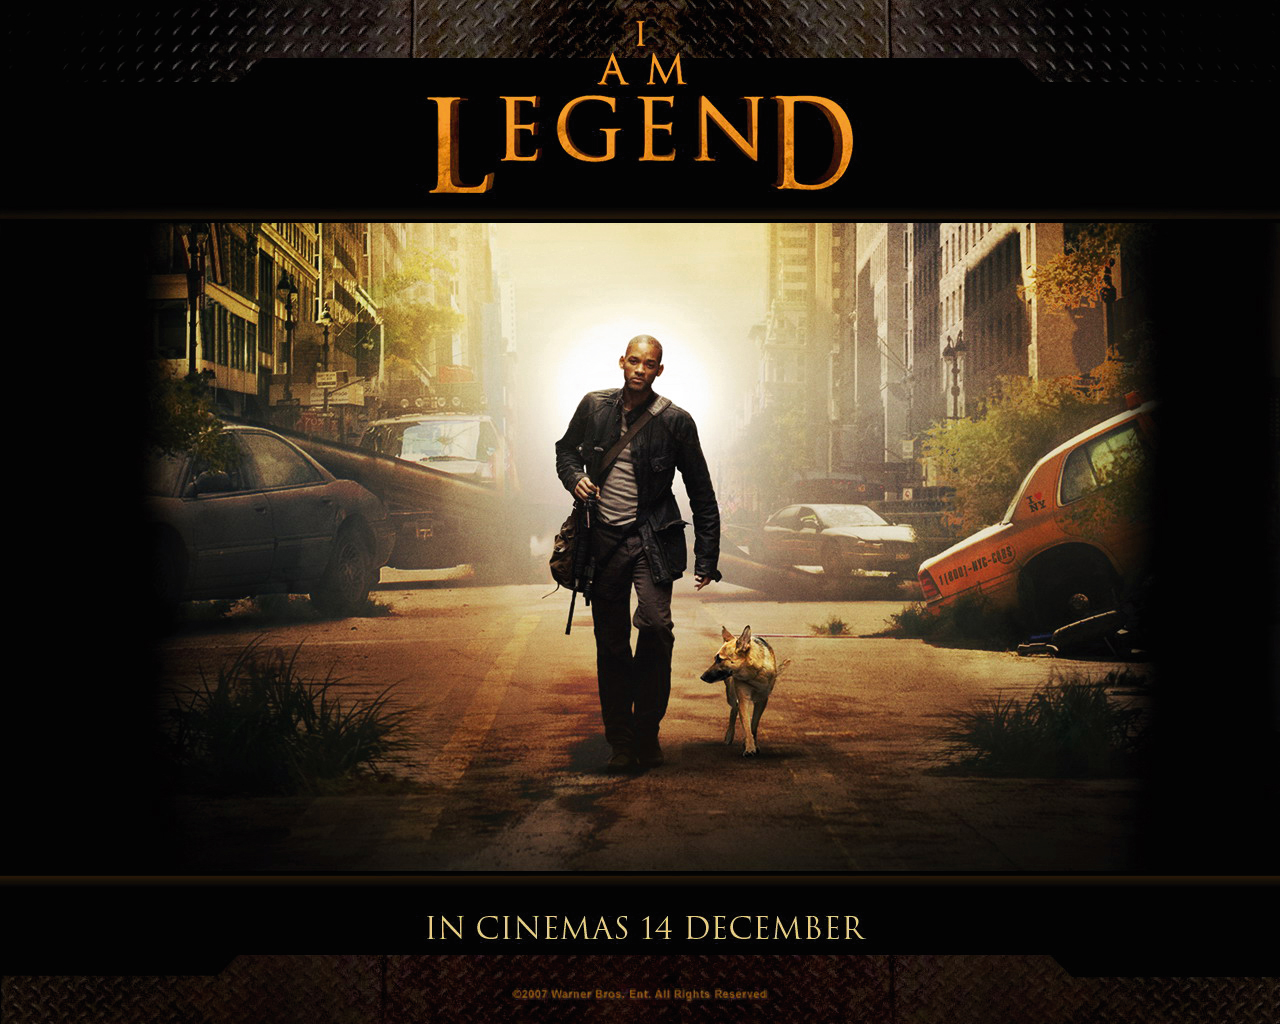 Movie Memorabilia Emporium I Am Legend Wallpaper Set 01 1280x1024